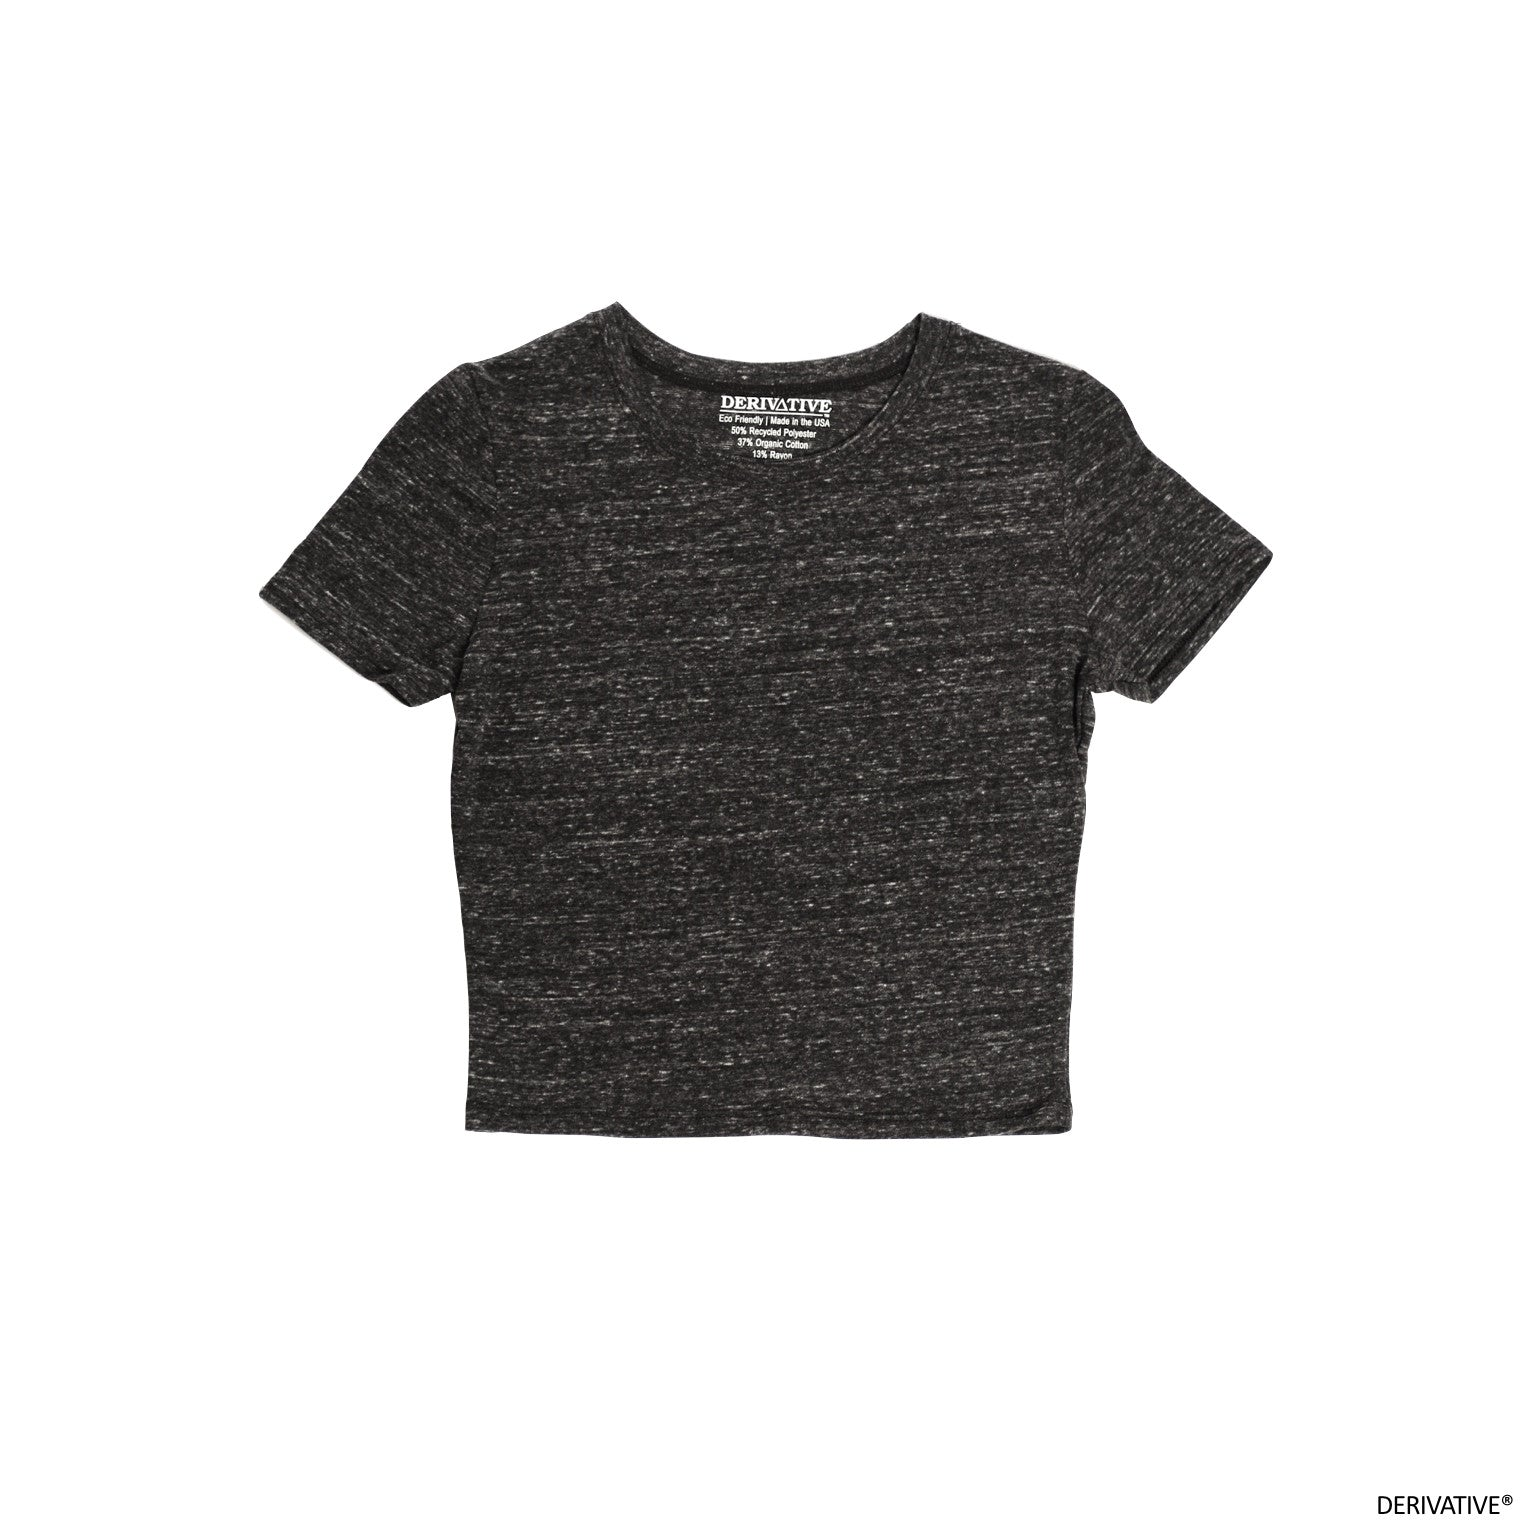 601ca507aa1 ... womens crop top t-shirt made from soft organic cotton & recycled  polyester from post